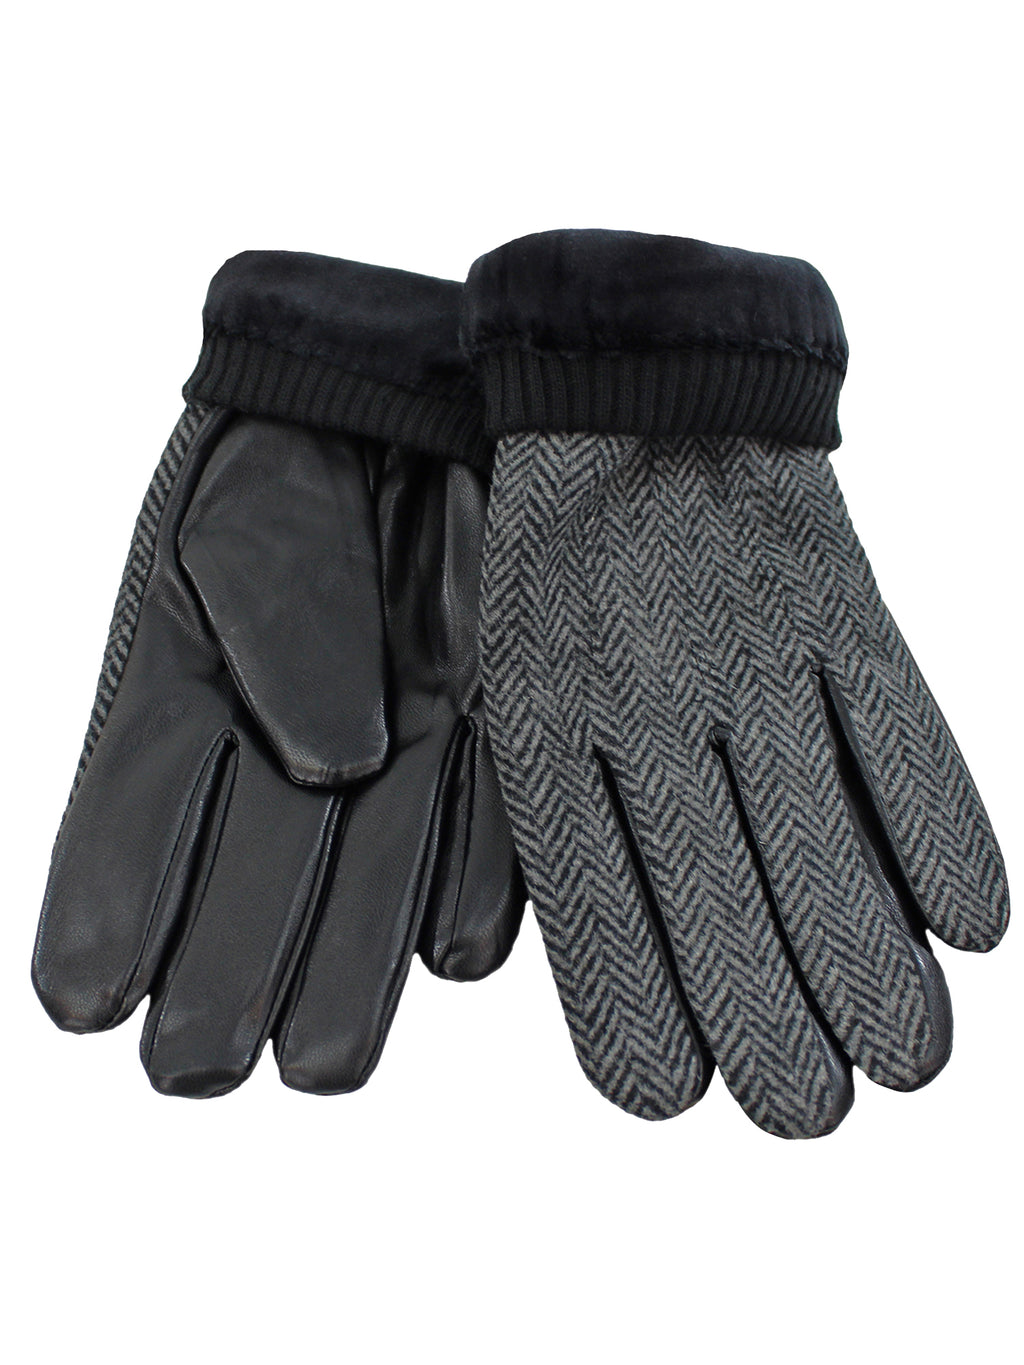 Black Herringbone Pattern Winter Gloves